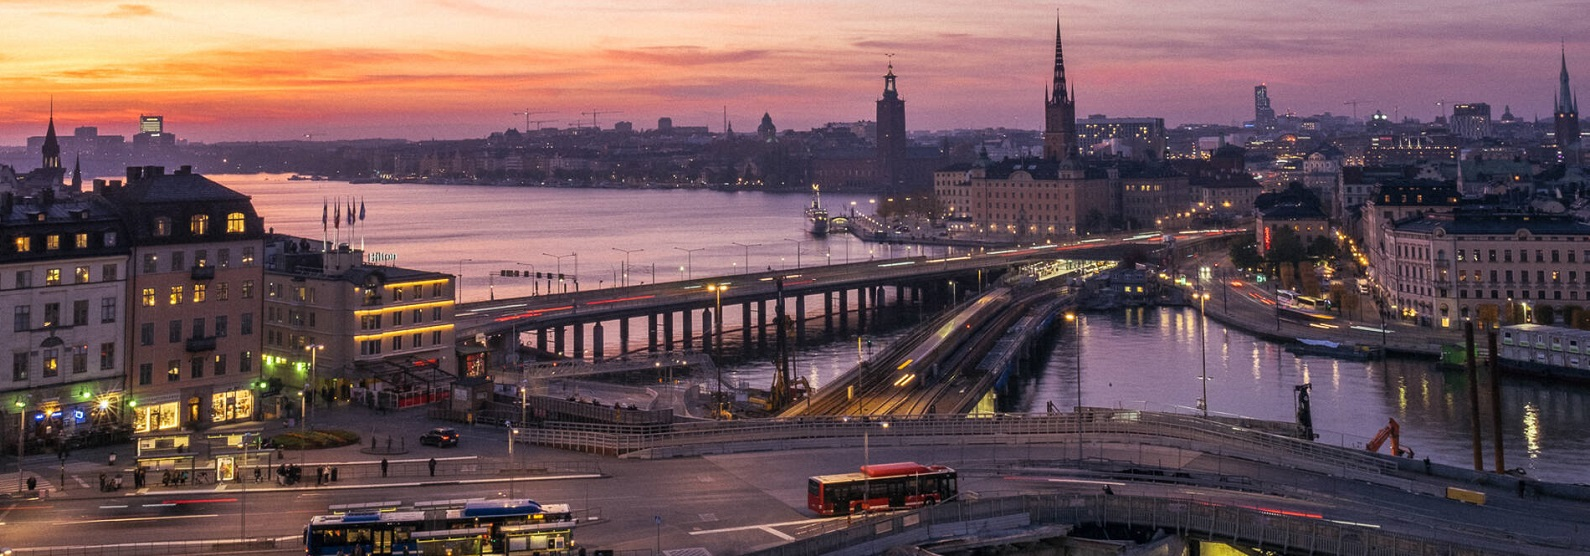 Sunset over Stockholm City